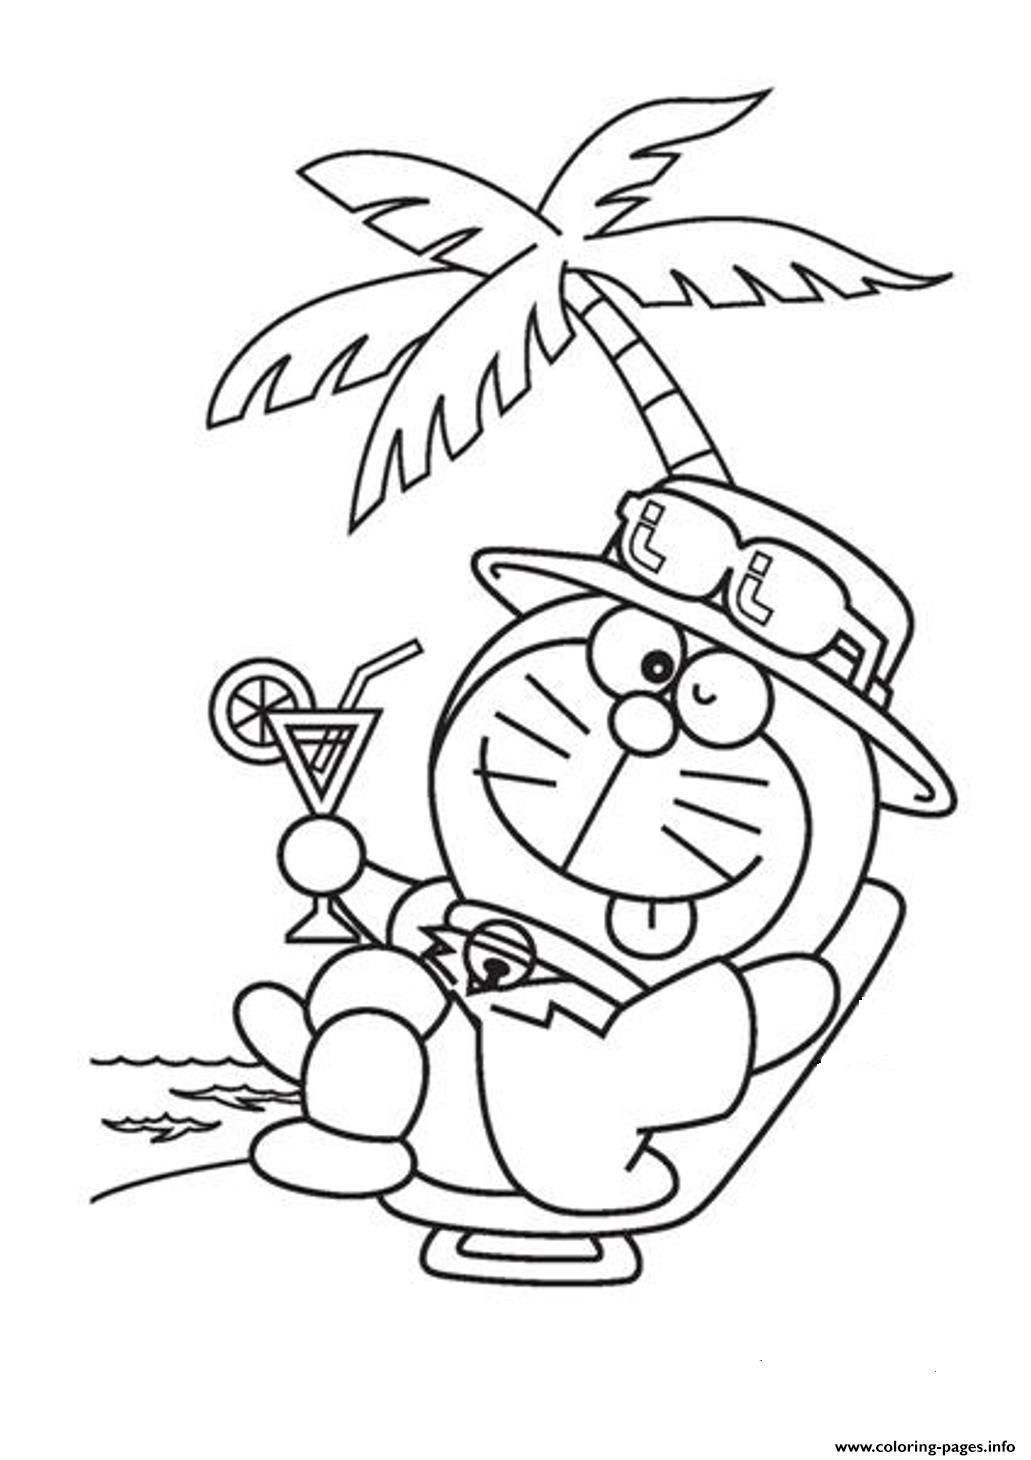 Relaxing Doraemon Cartoon Sf012 Coloring Pages Printable